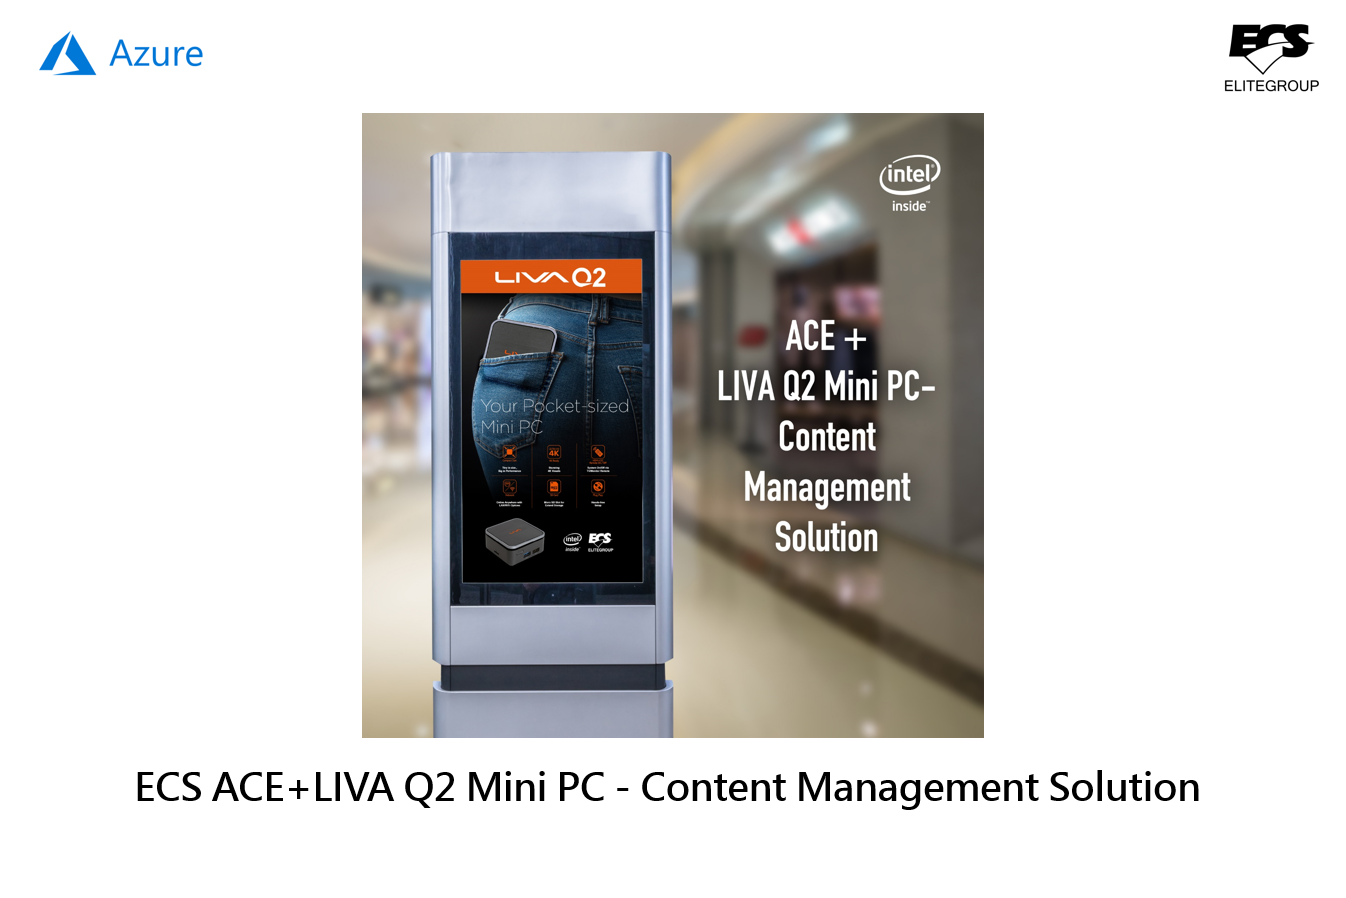 ECS ACE+LIVA Q2 Mini PC - Content Management Solution